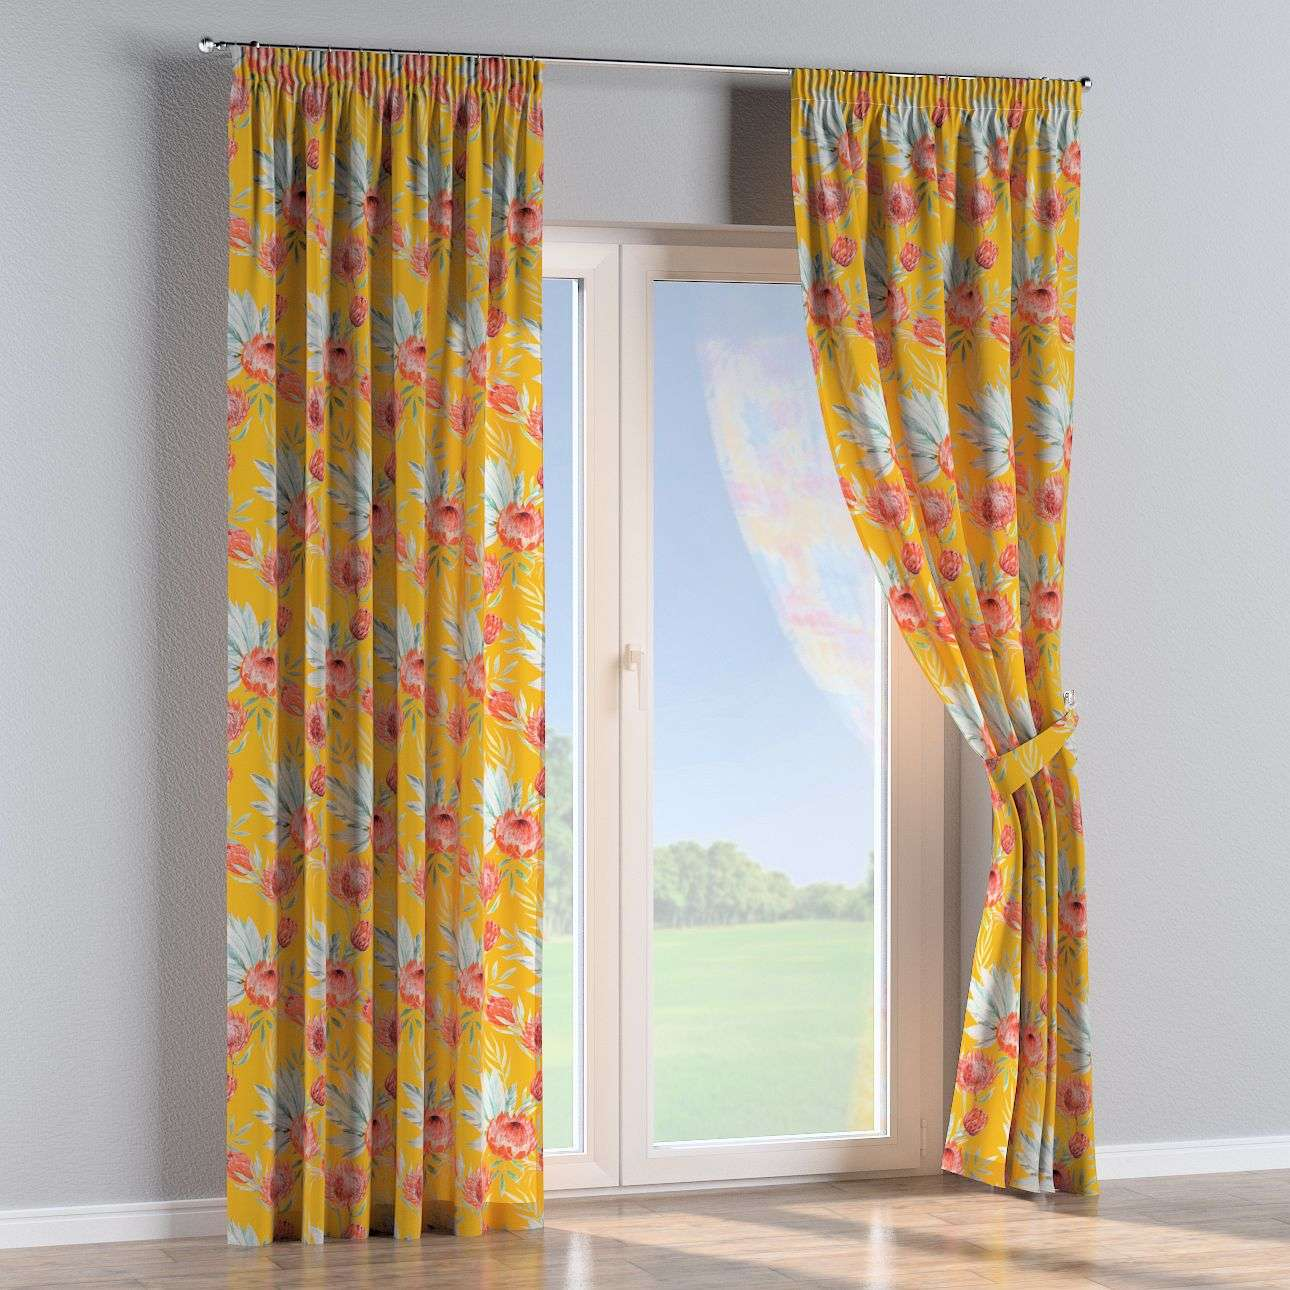 Pencil pleat curtains 130 x 260 cm (51 x 102 inch) in collection New Art, fabric: 141-58